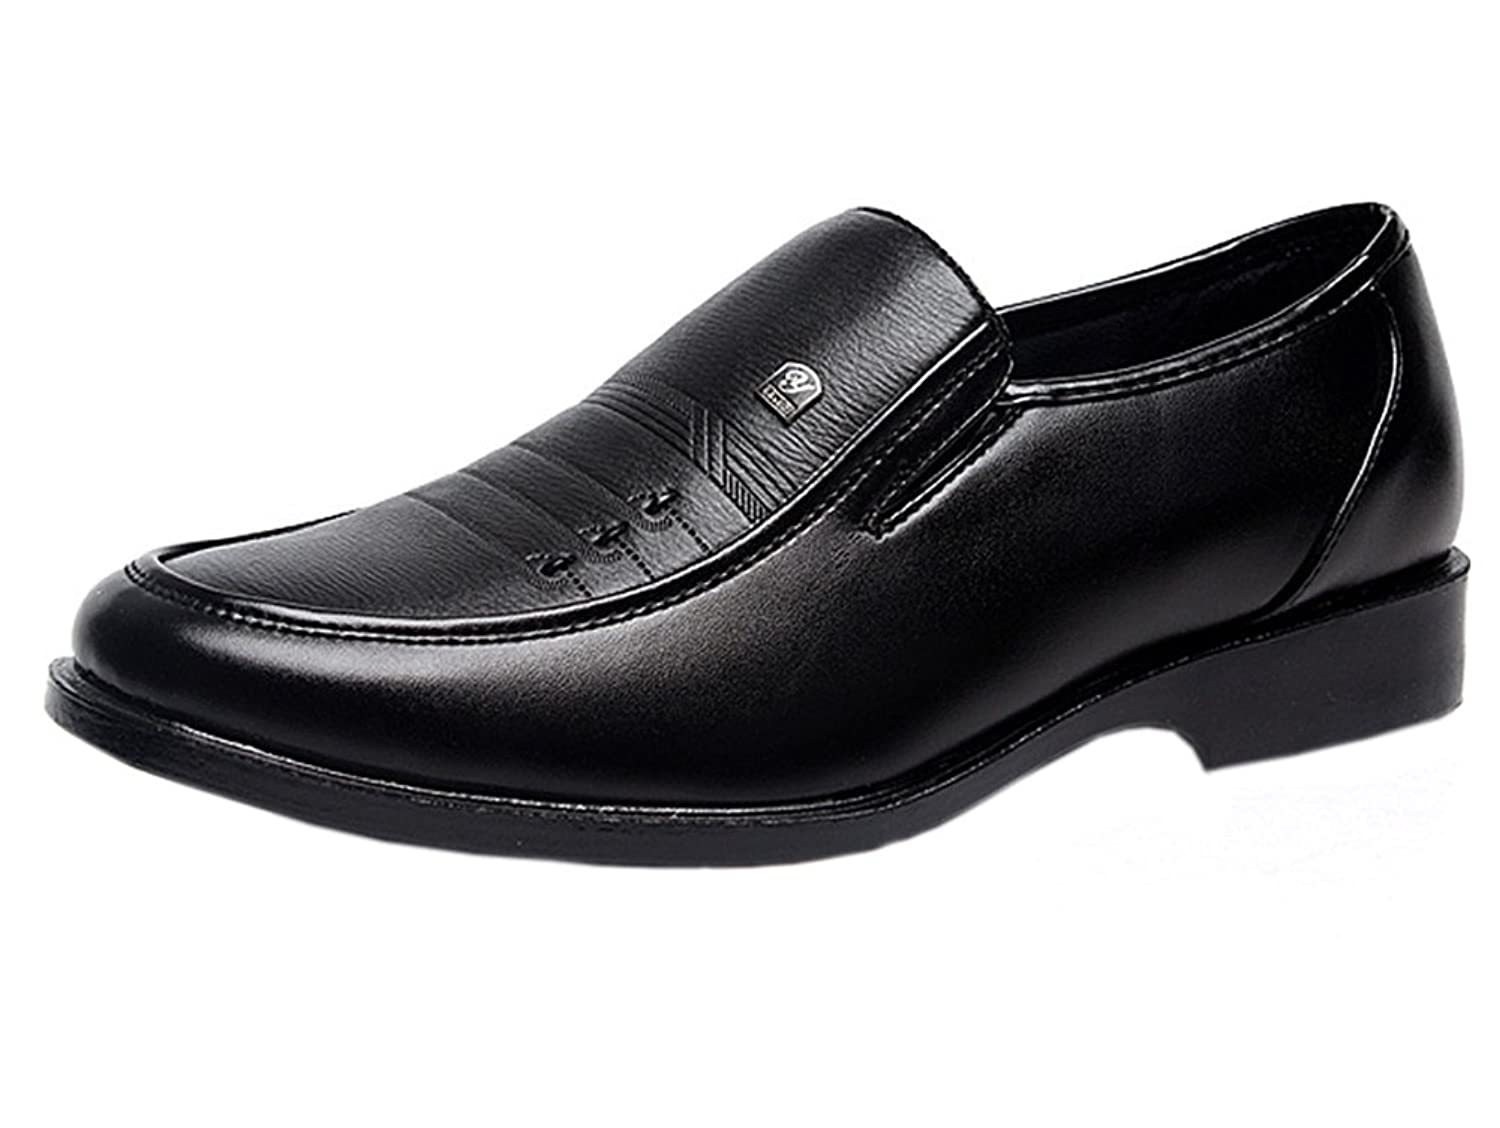 X-shoes Men's Spring PU Leather Classic Smooth Slip On Loafer Dress Shoe Black